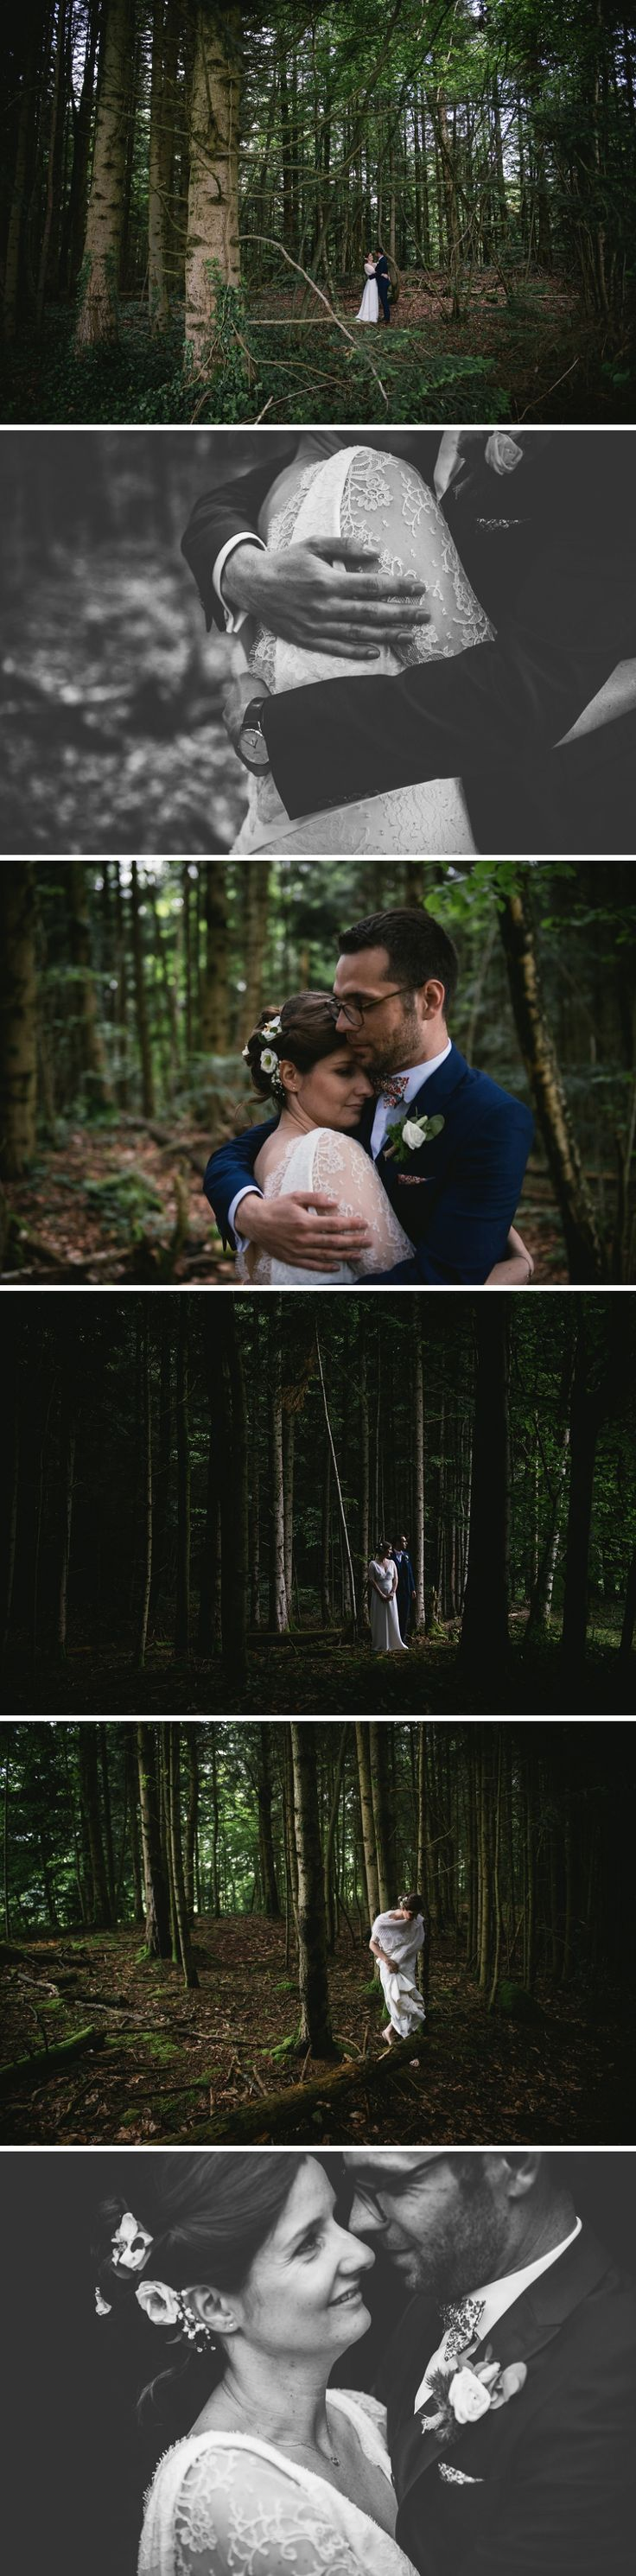 Couples pictures in the forest on their wedding day - french wedding photographer // Zephyr & Luna photography